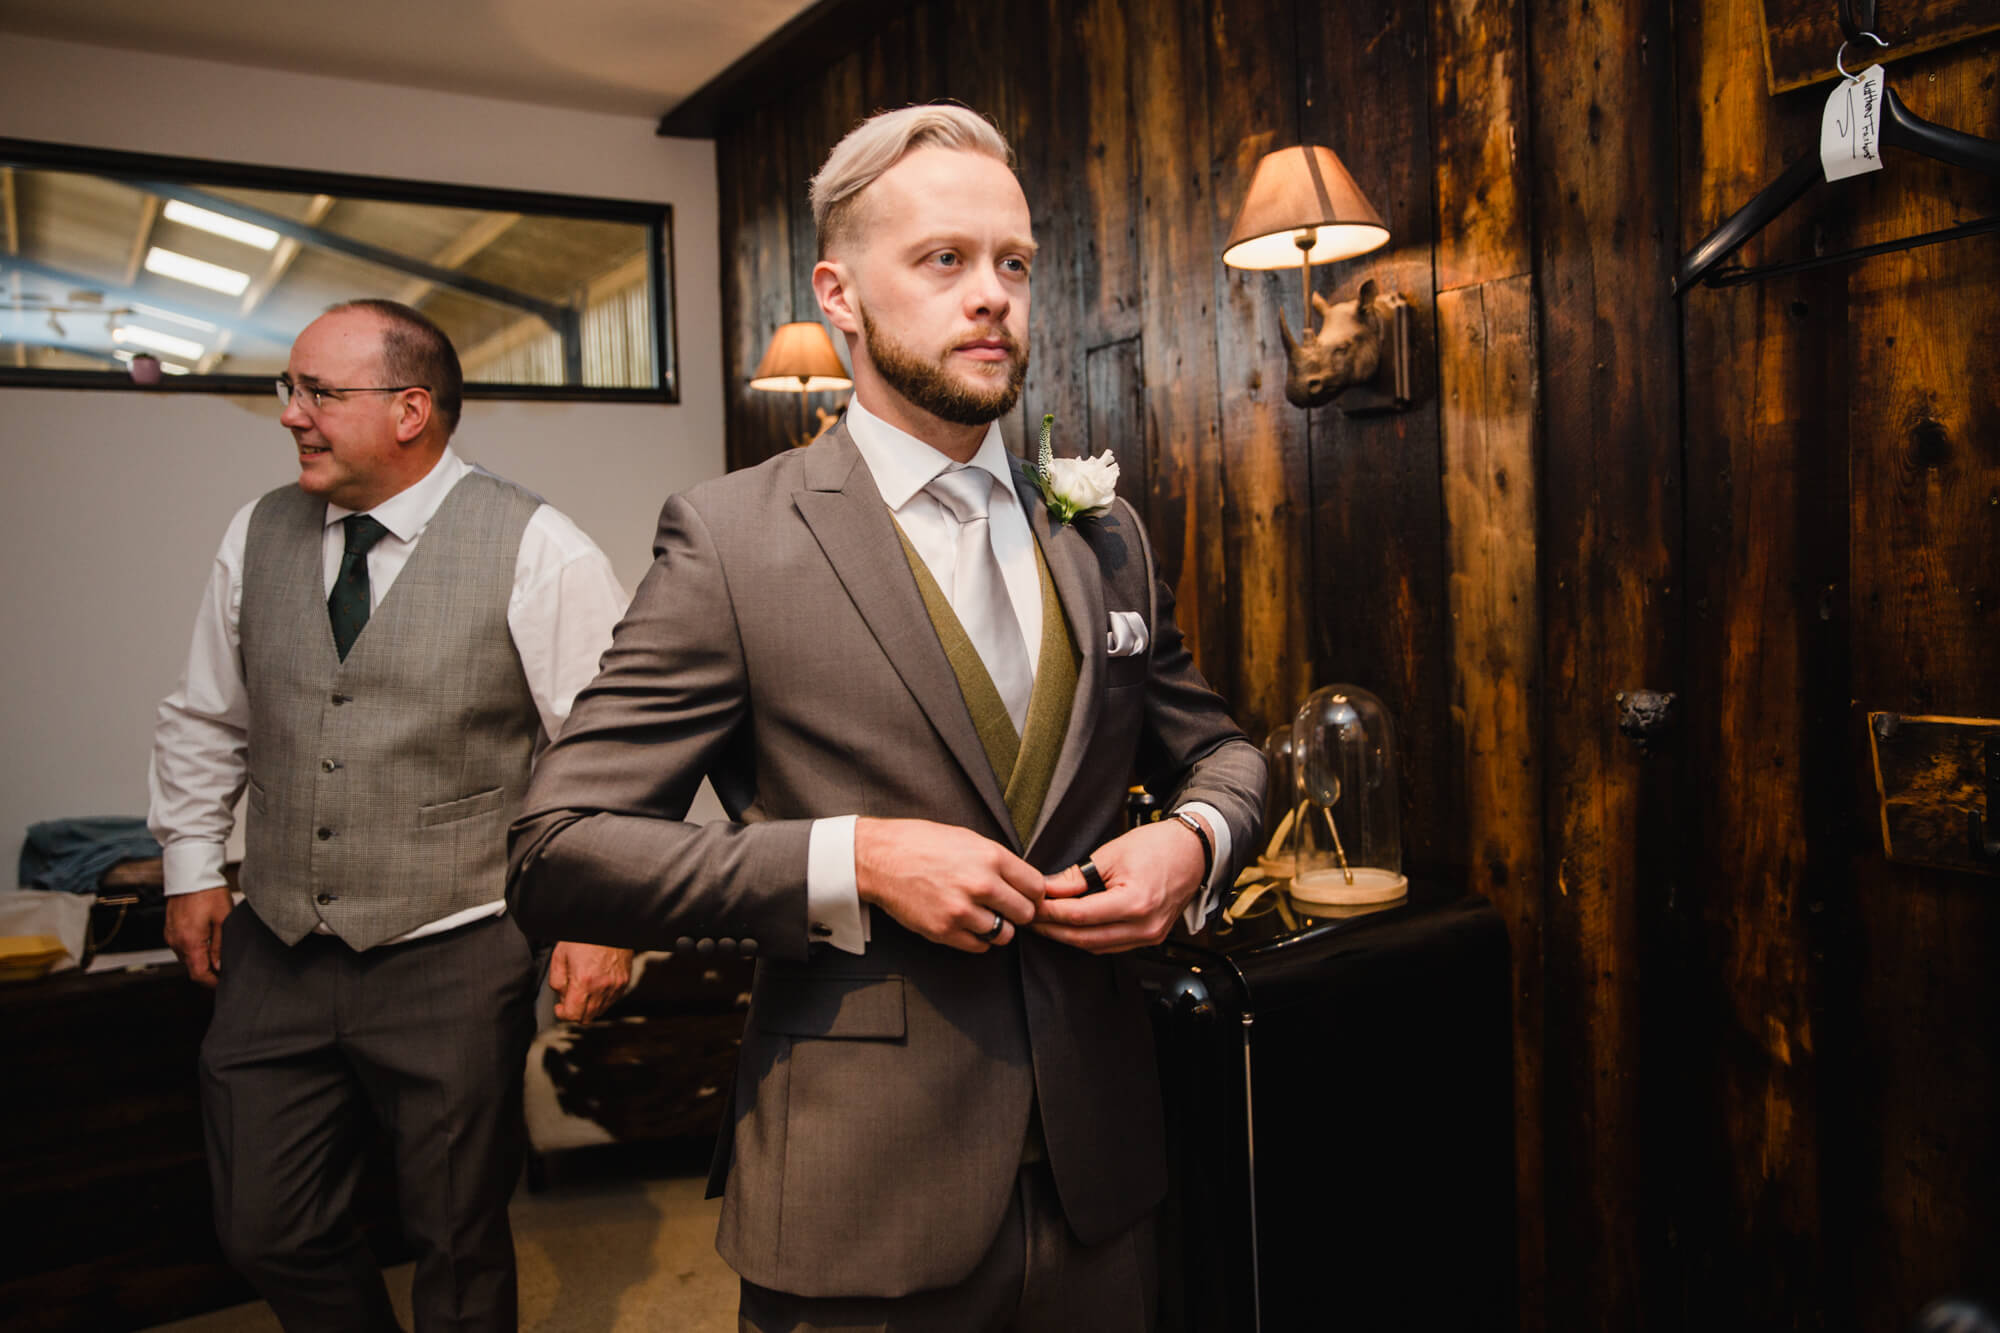 groom fastening whitfield and ward suit buttons before attaching flowers to suit lapel